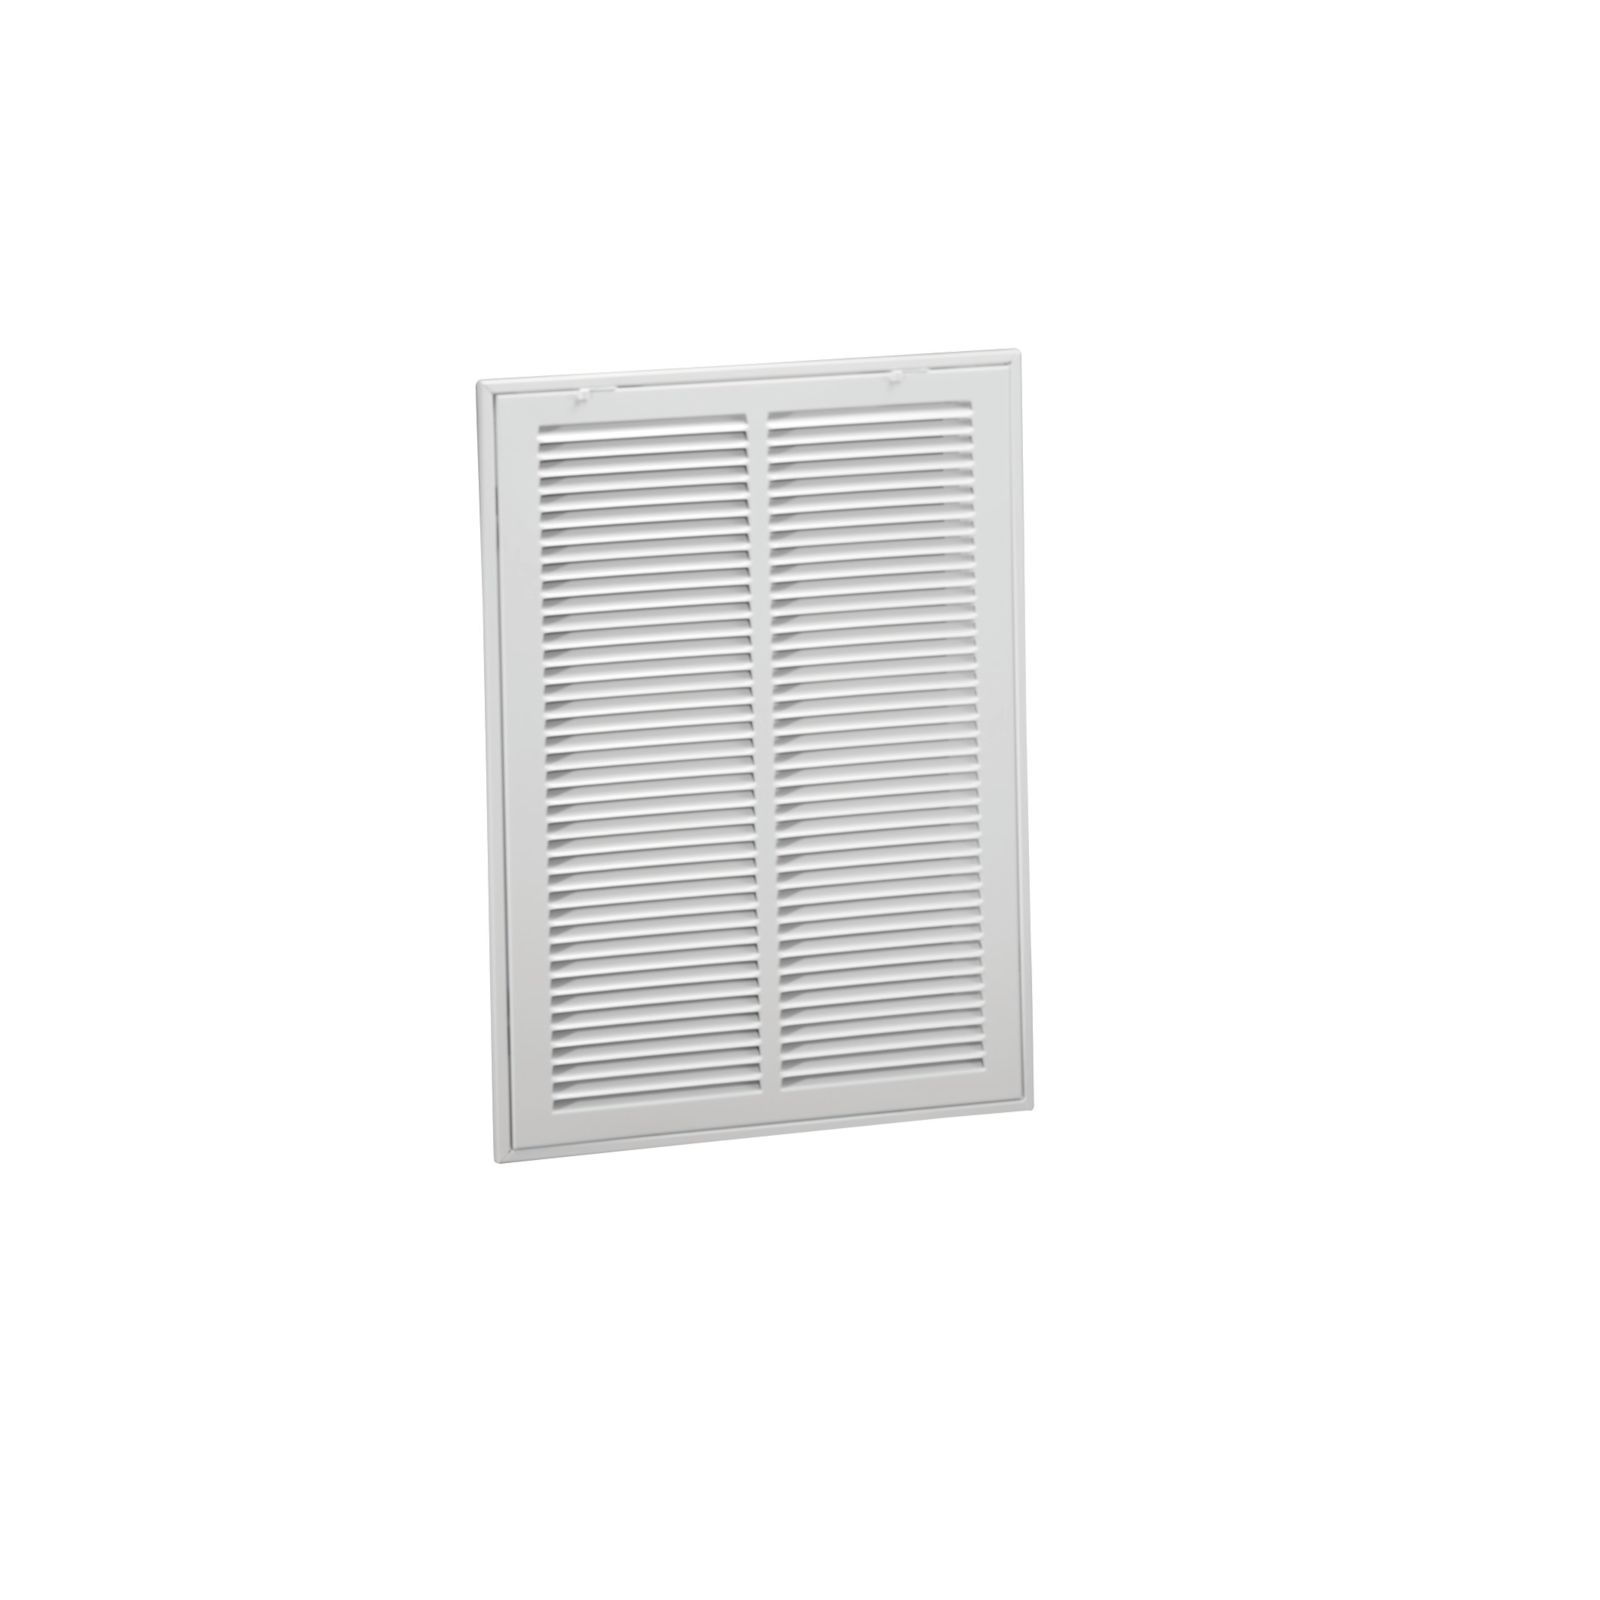 "Hart & Cooley 043509 - #673 Steel Return Air Filter Grille, White Finish, 16"" X 16"""